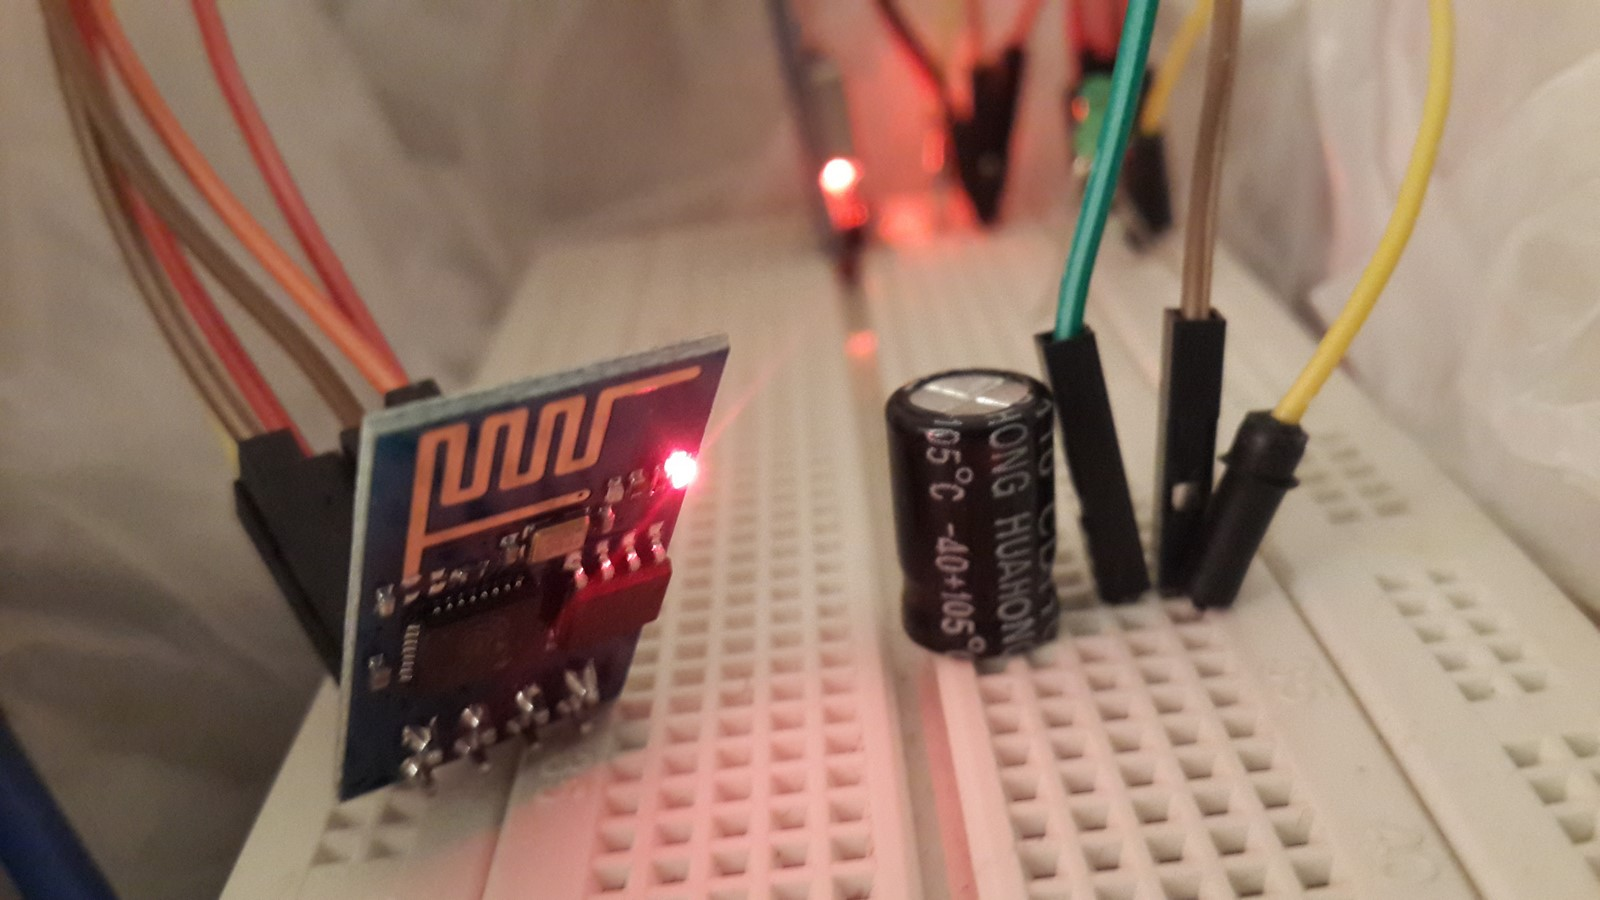 Esp8266 Flash Nodemcu Write Lua Script And Control A Water Heater Possibly Related To Quotsimple Ac Light Bulb Flasherquot Circuits